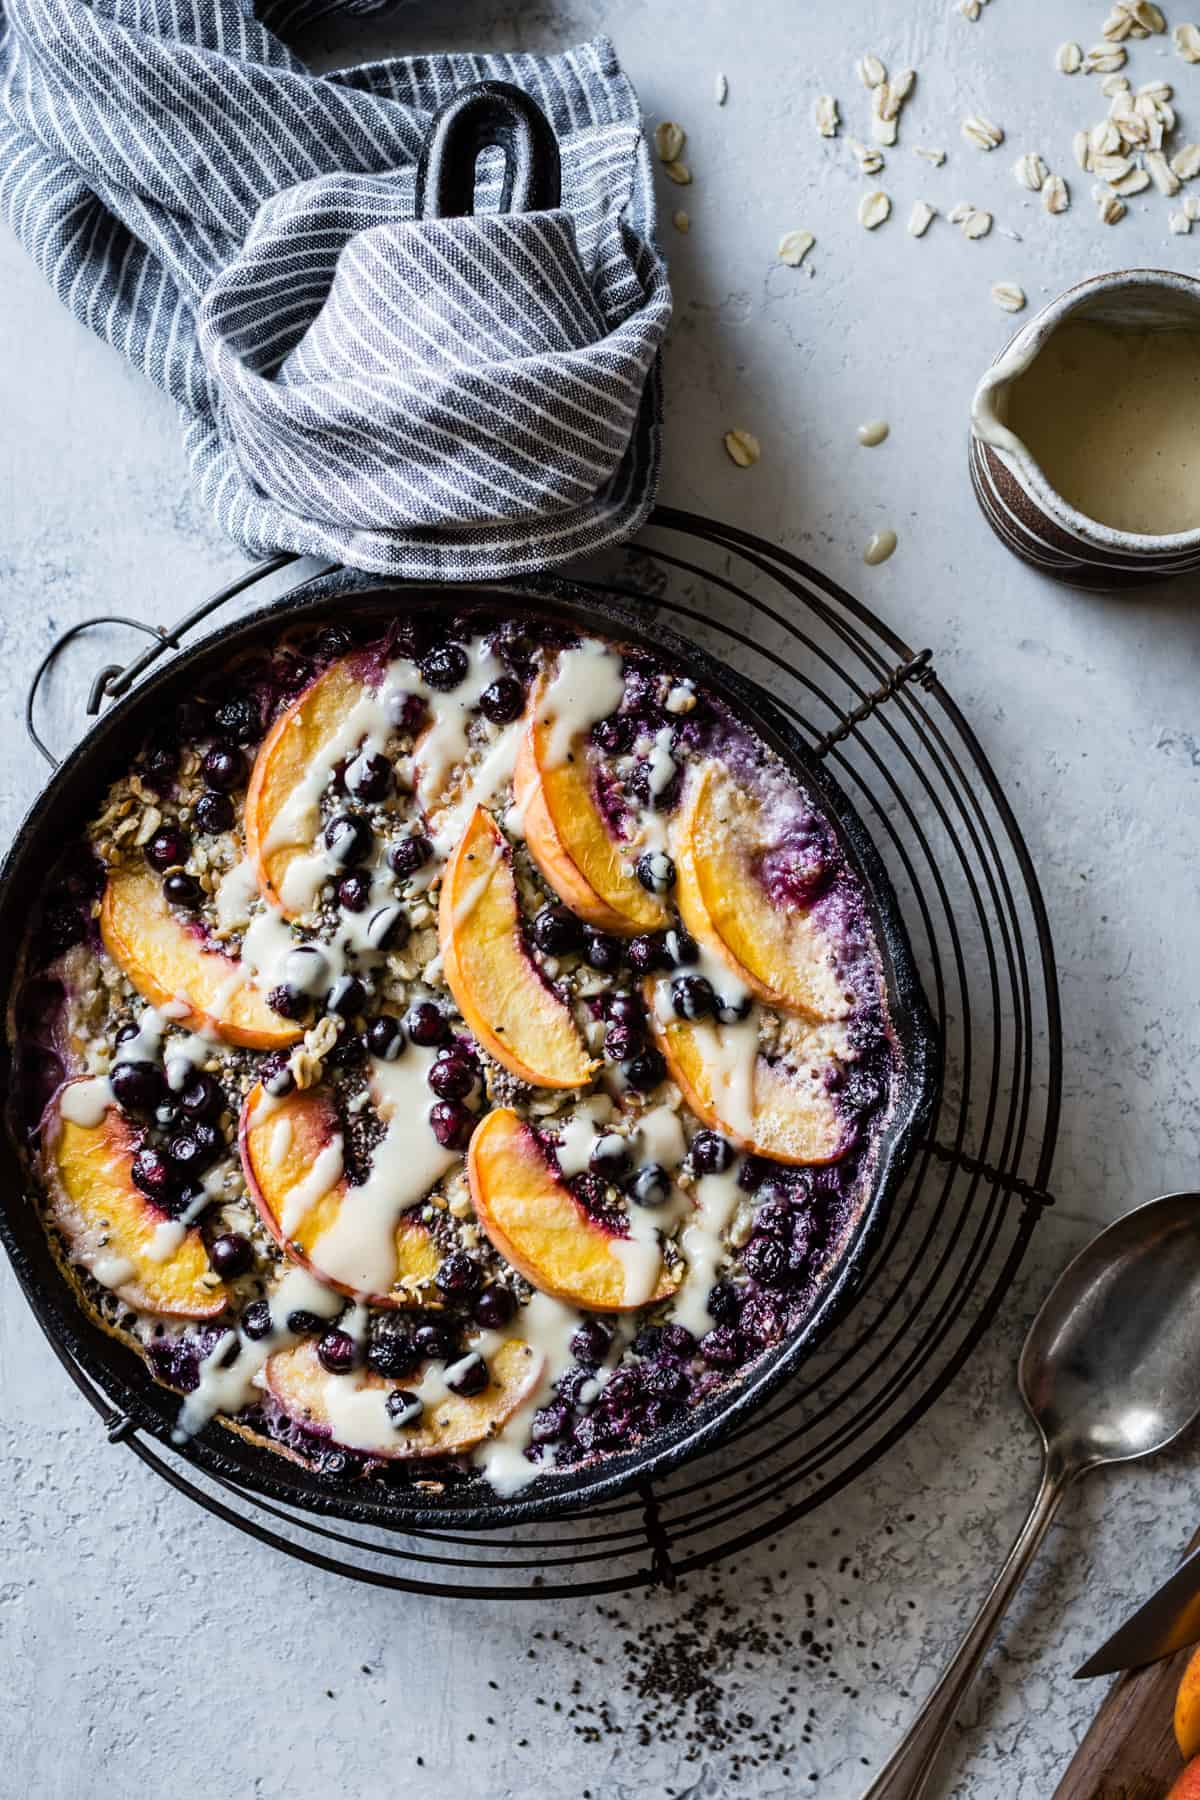 hearty and delicious Super Seedy Vegan Baked Oatmeal with Peaches and Huckleberries {gluten-free & dairy-free} in bowl